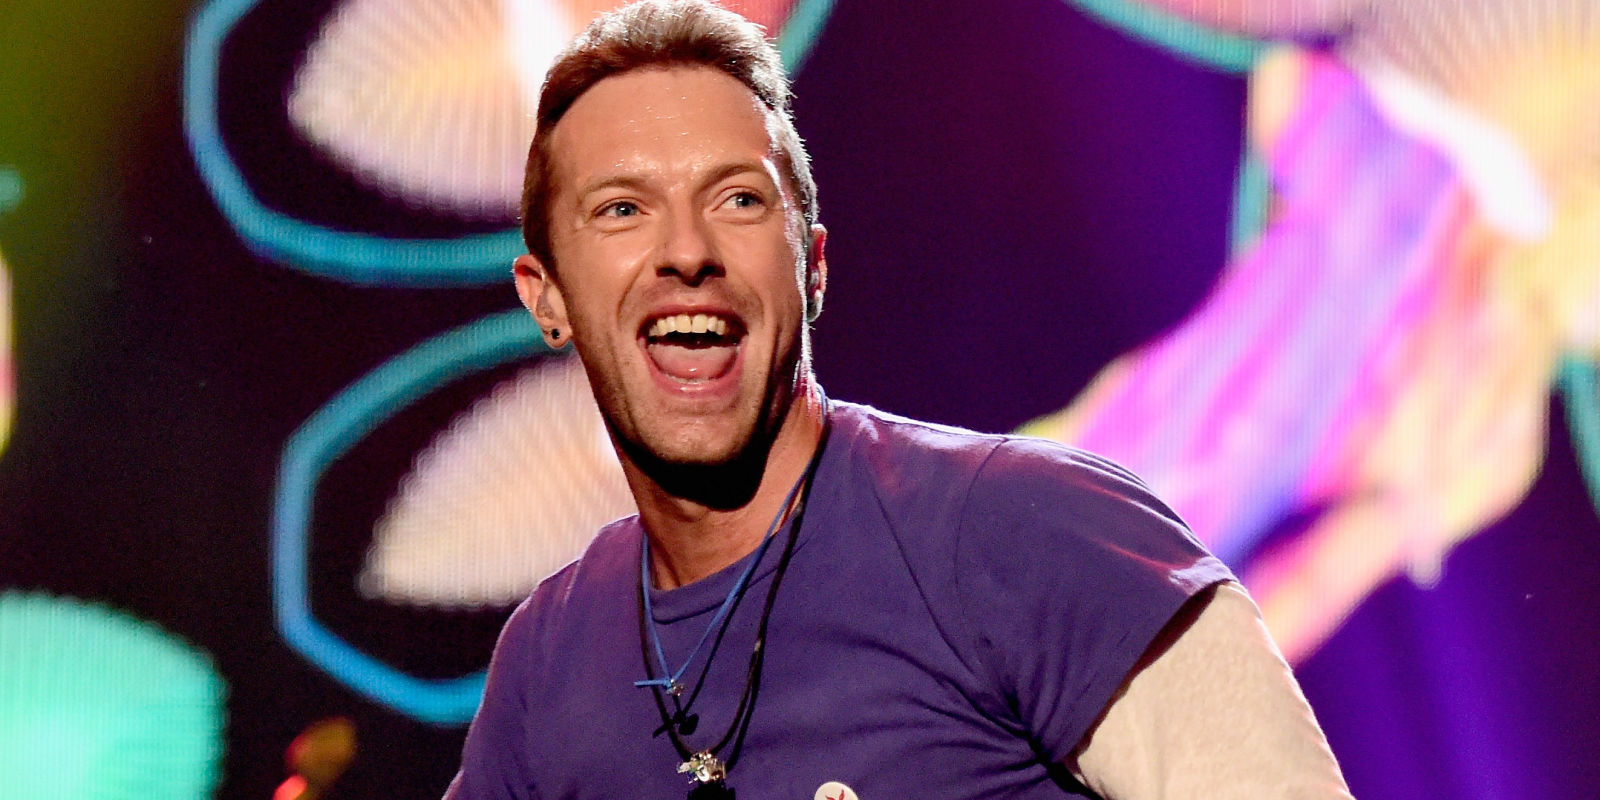 coldplay 2016 songs download